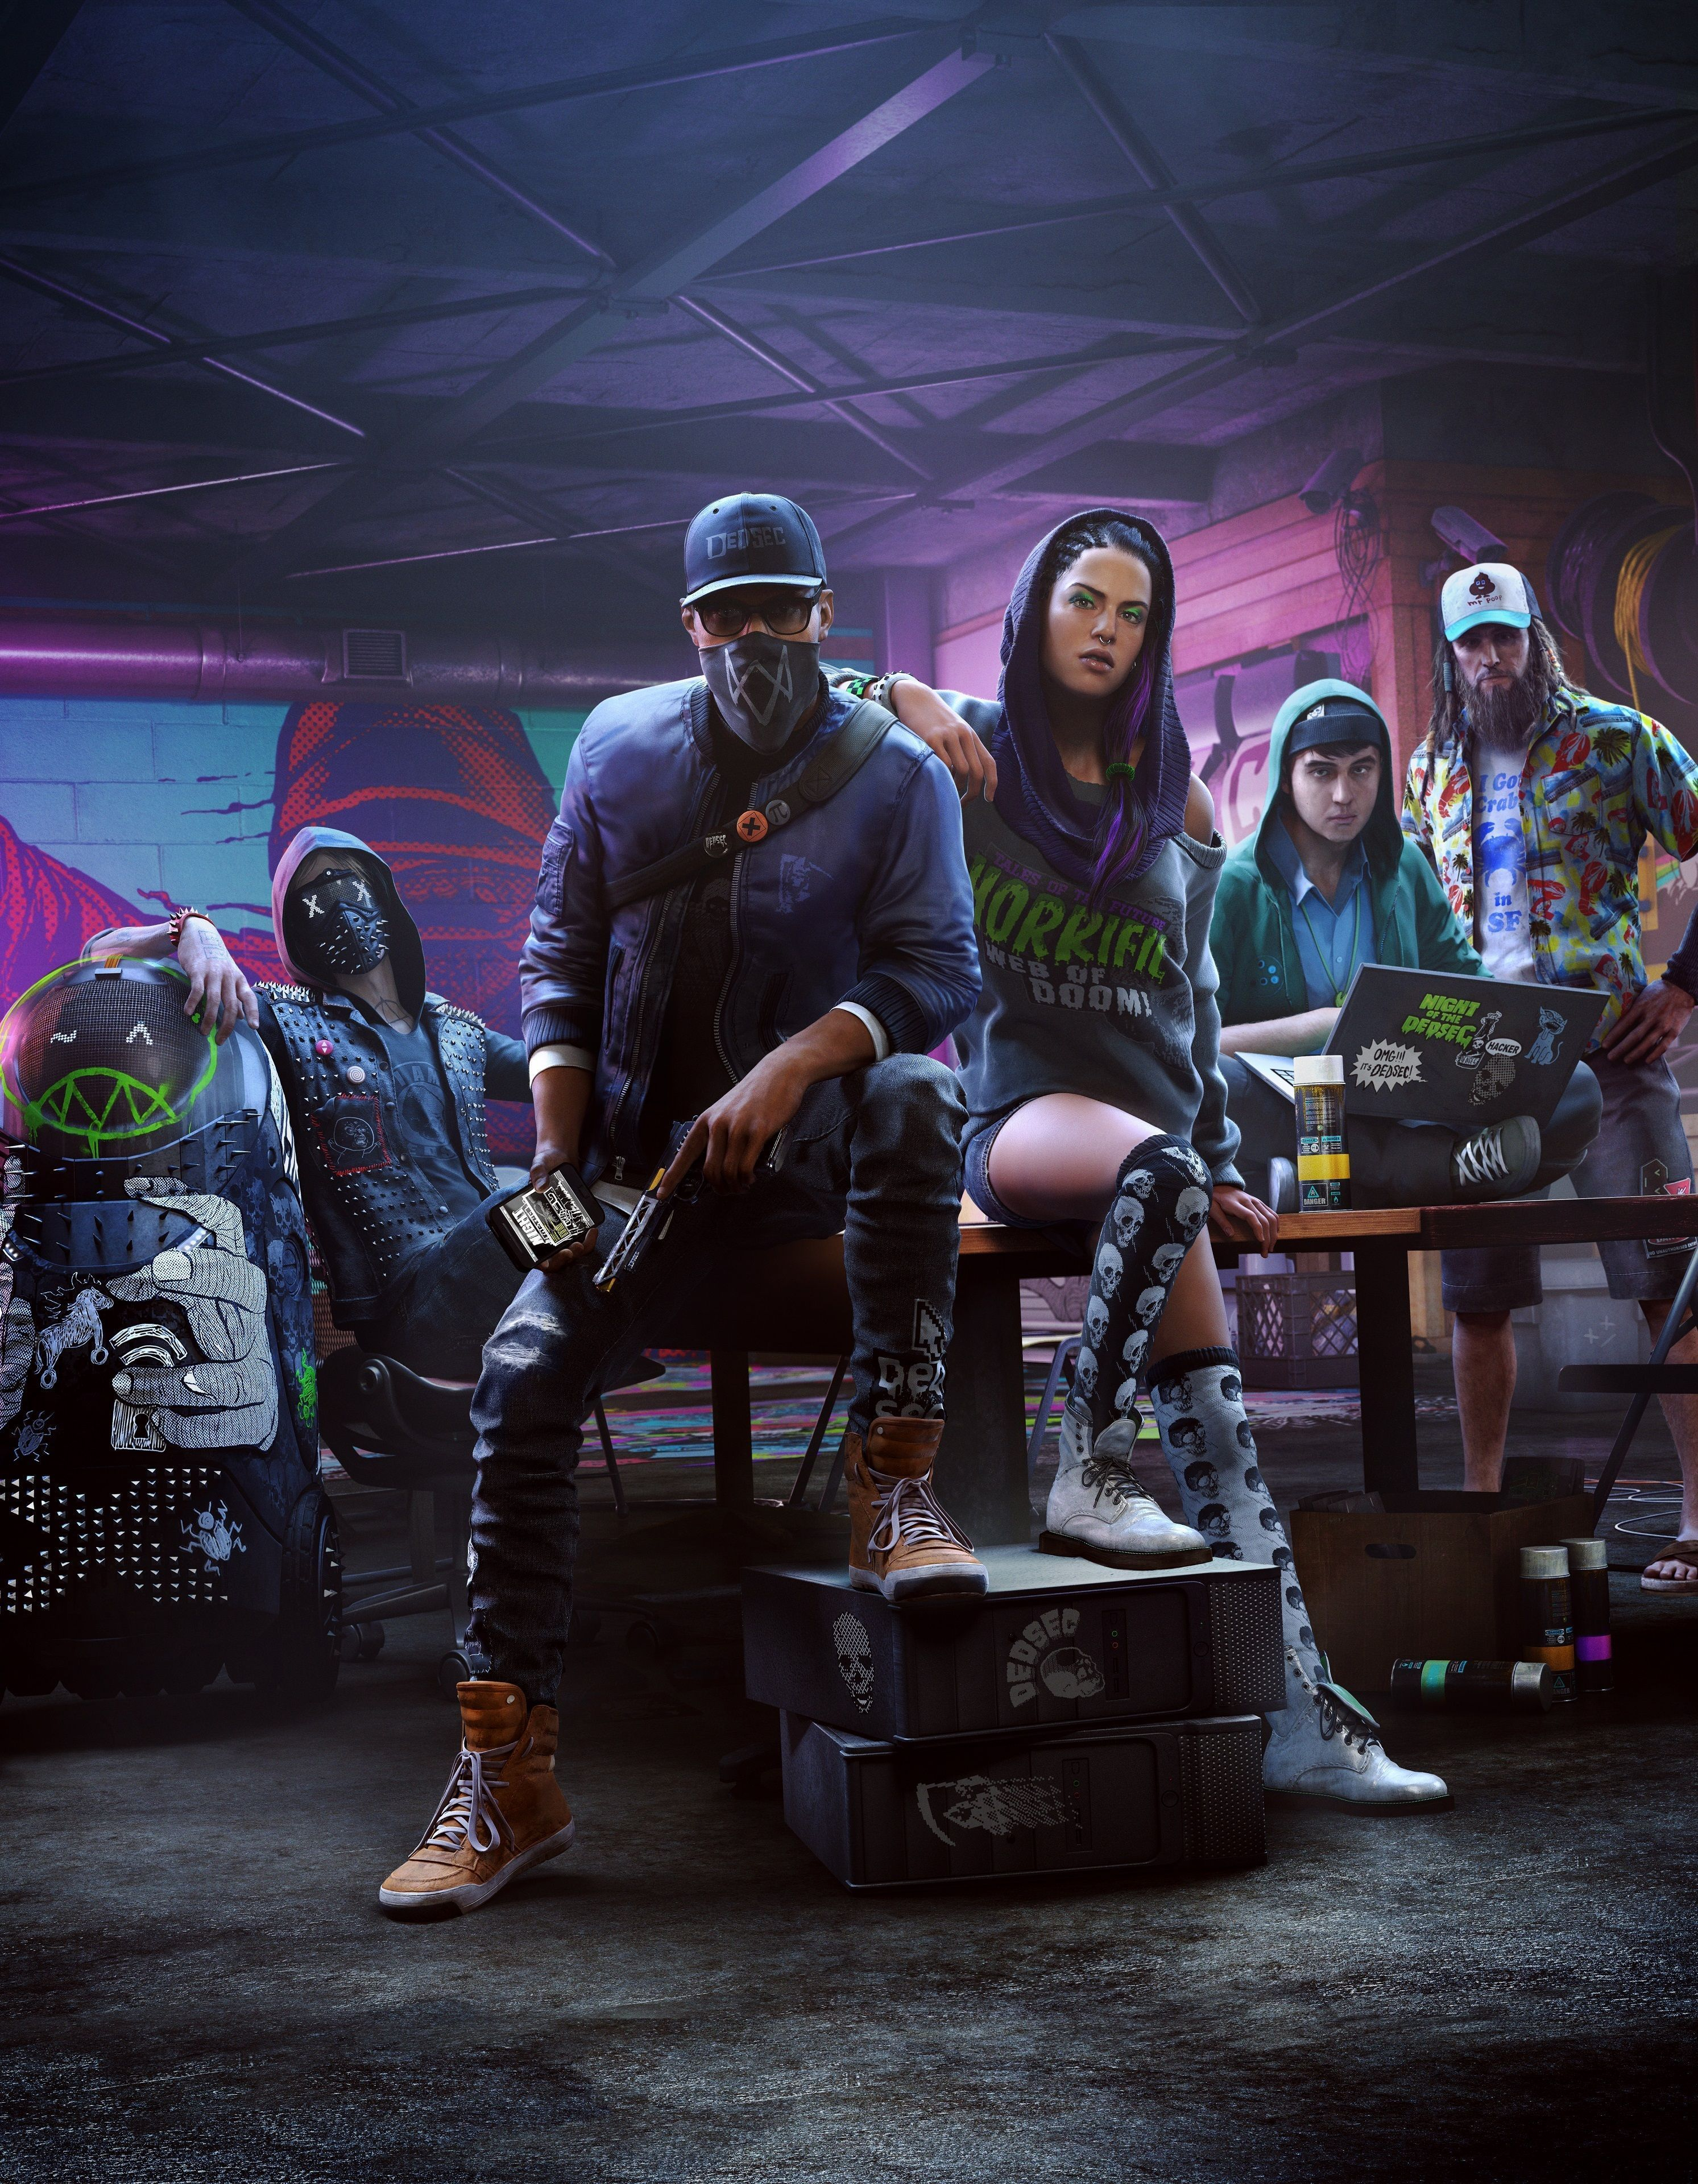 wallpaper hd watch dogs 2 dedsec team watchdogs2